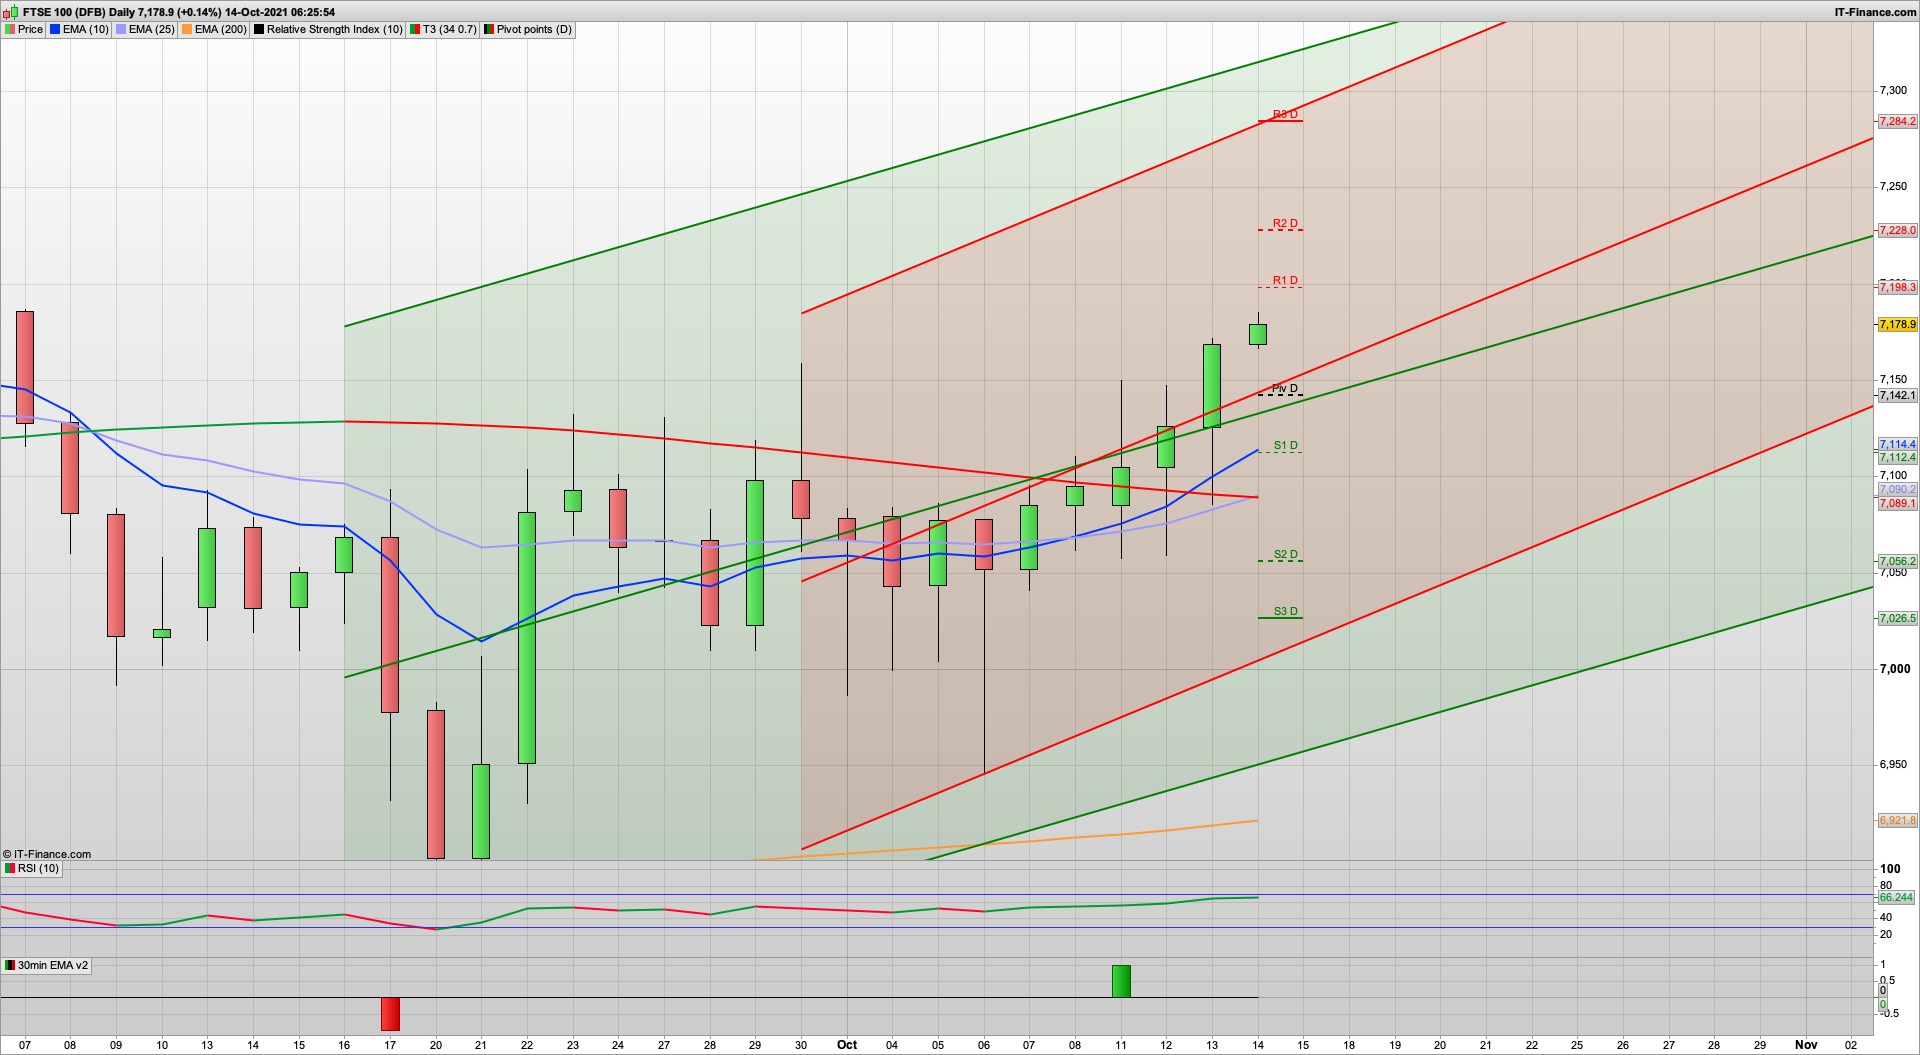 Bulls gaining the upper hand with 7210 FTSE 4403 SPX looming | 7228 7284 resistance | 7170 7150 support